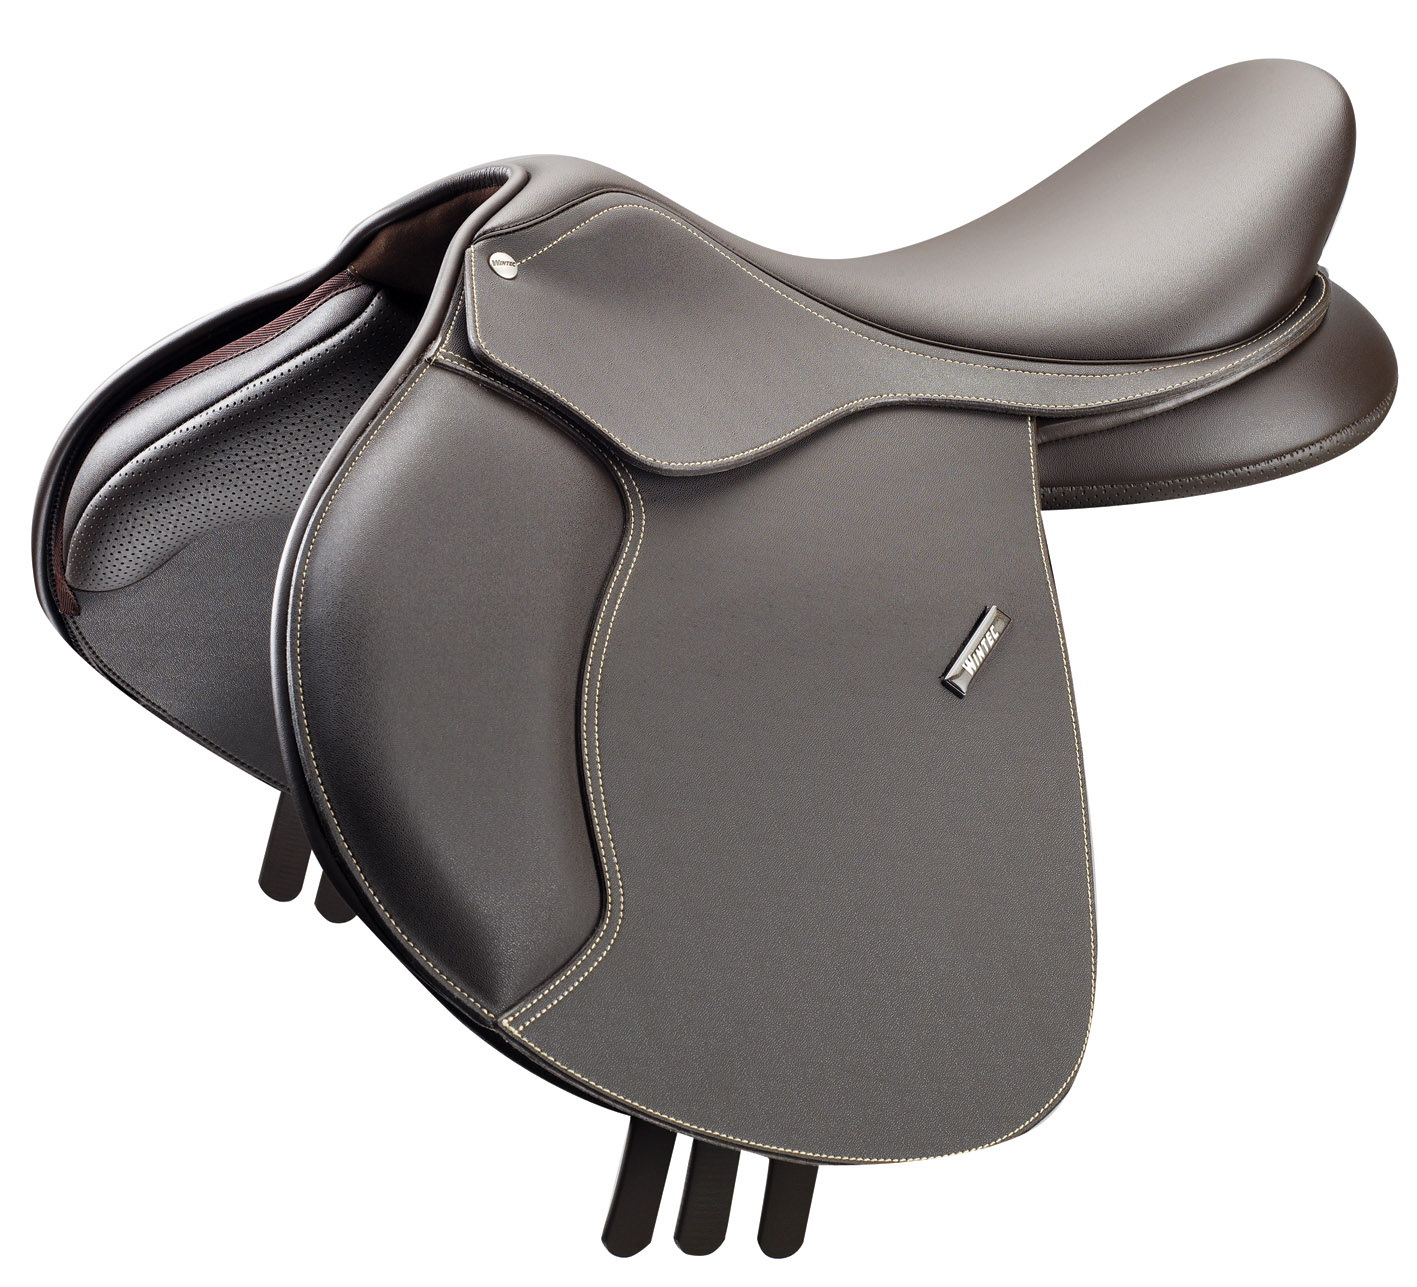 NEW 2012 Wintec 500 Flocked Jump Saddle